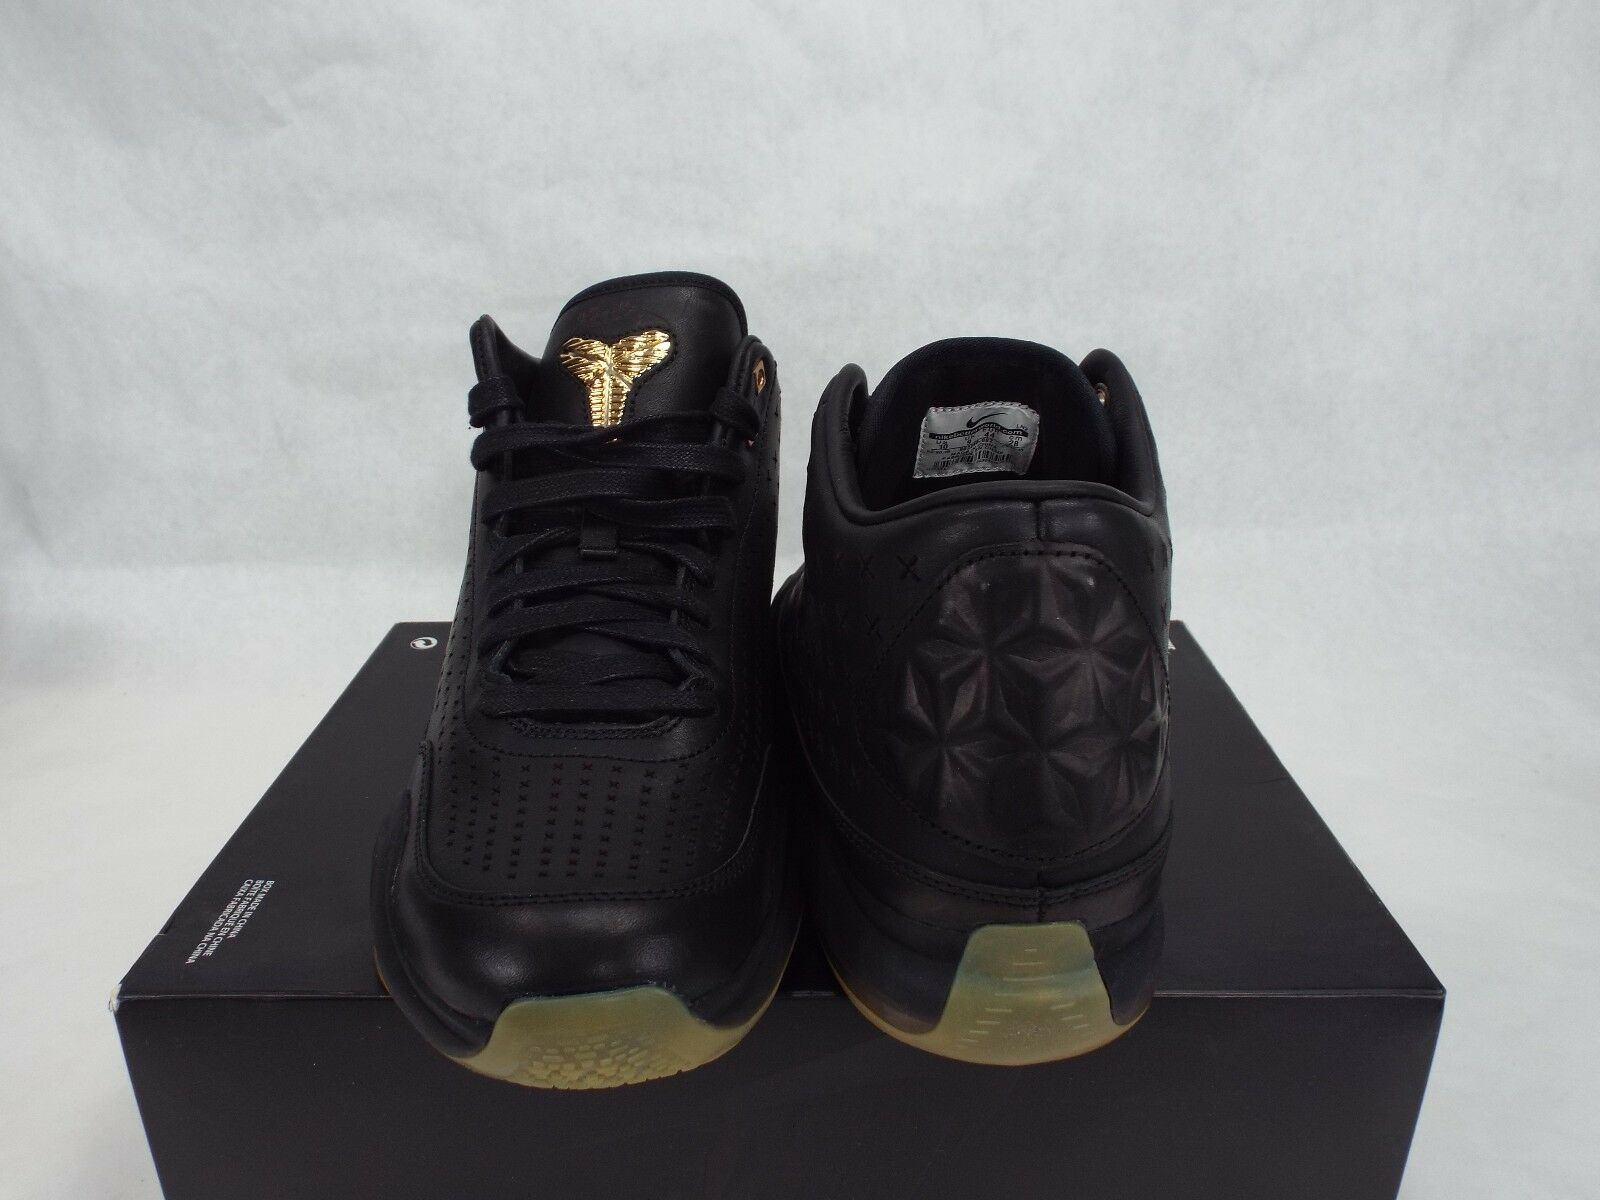 c639bb32a3b6 ... New New New Mens SZ 10 NIKE Kobe X Mid EXT Leather Basketball shoes 225  802366 ...